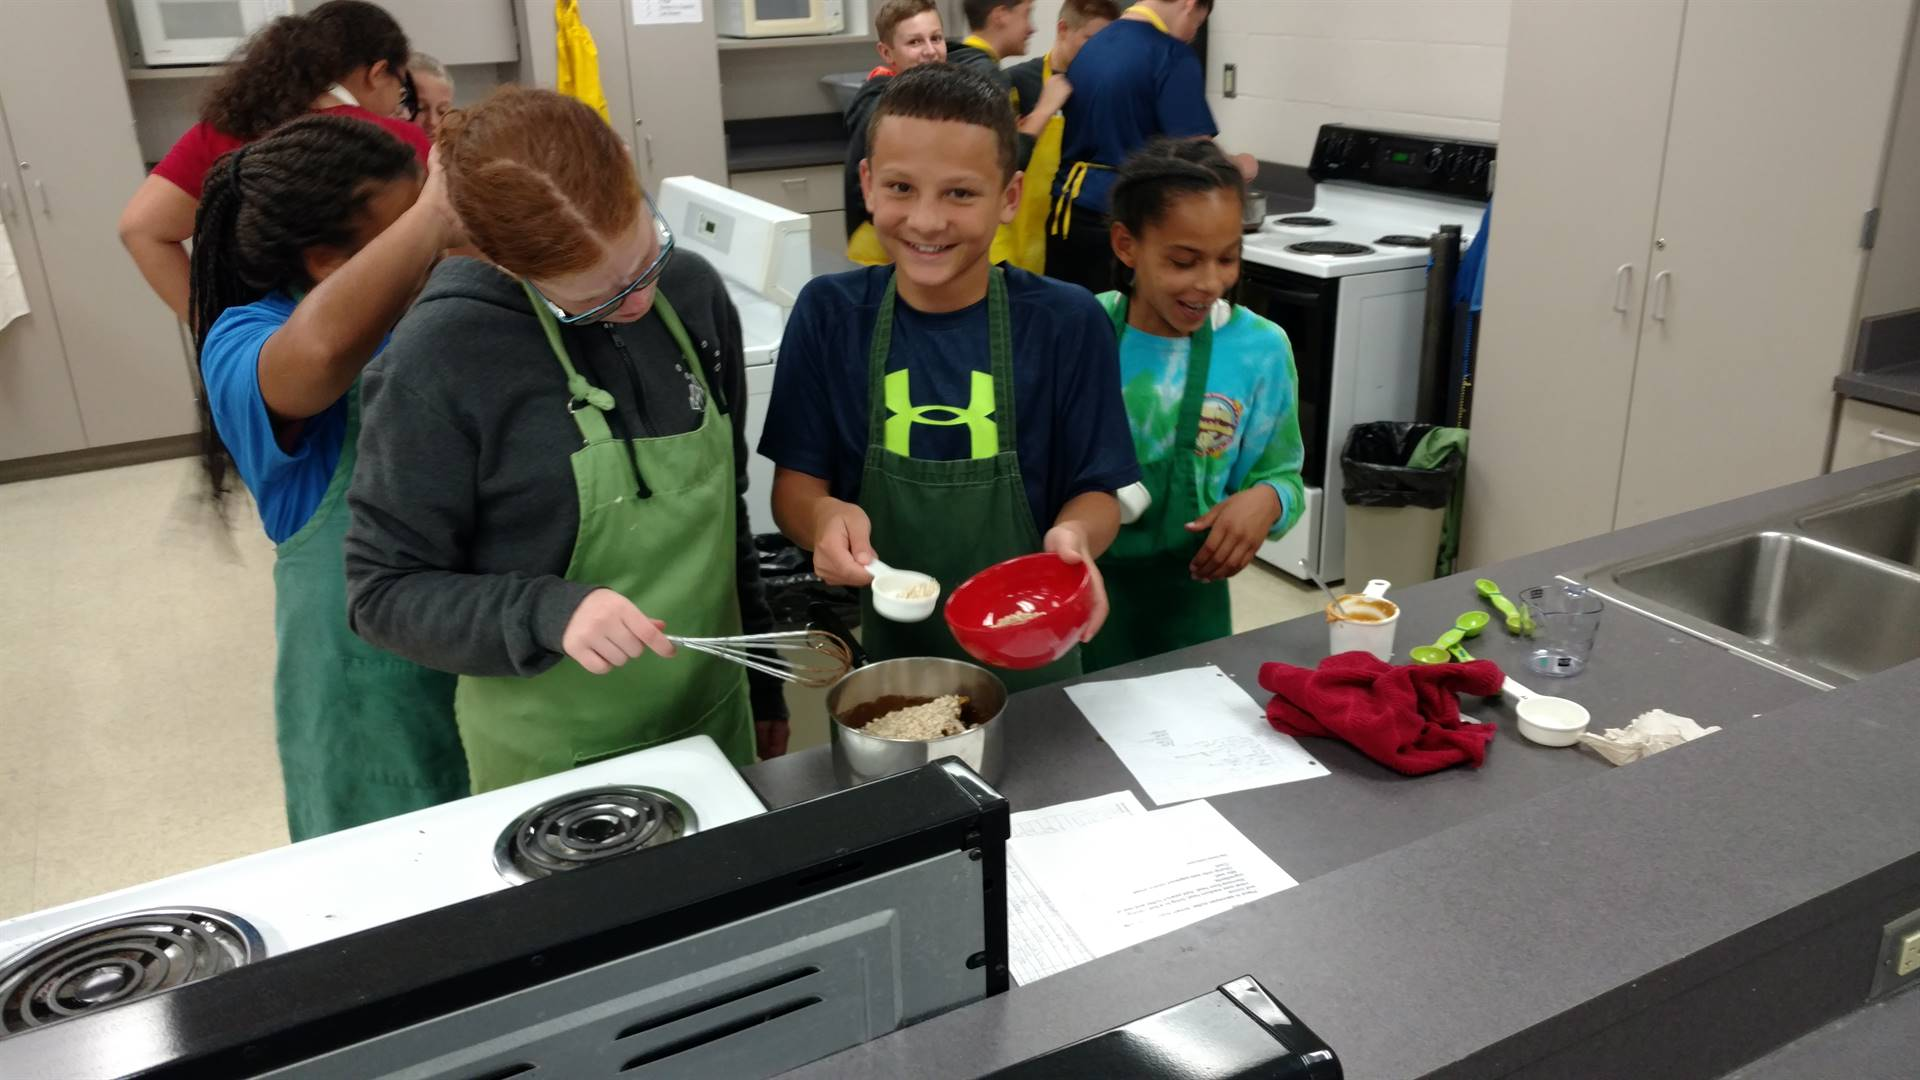 students working together in the kitchen